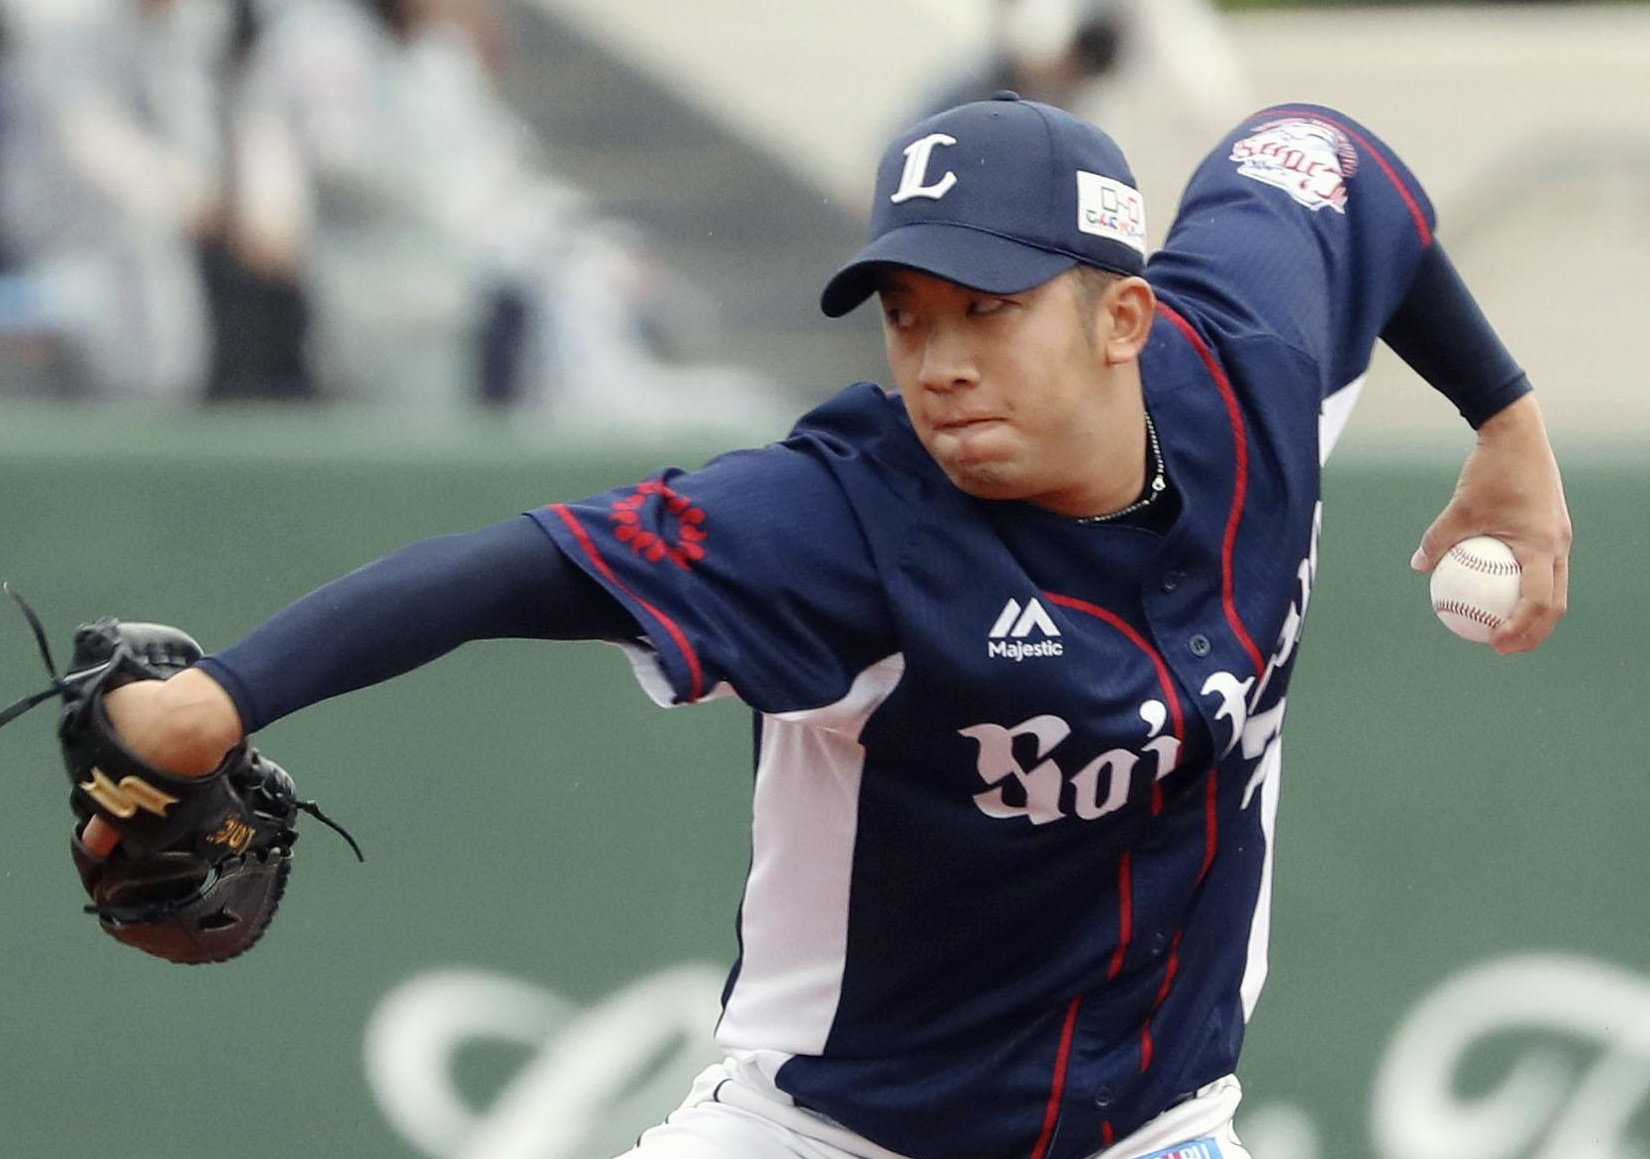 Lions reliever Shogo Noda pitches against the Fighters during the fifth inning on Wednesday afternoon in Kushiro, Hokkaido. | KYODO